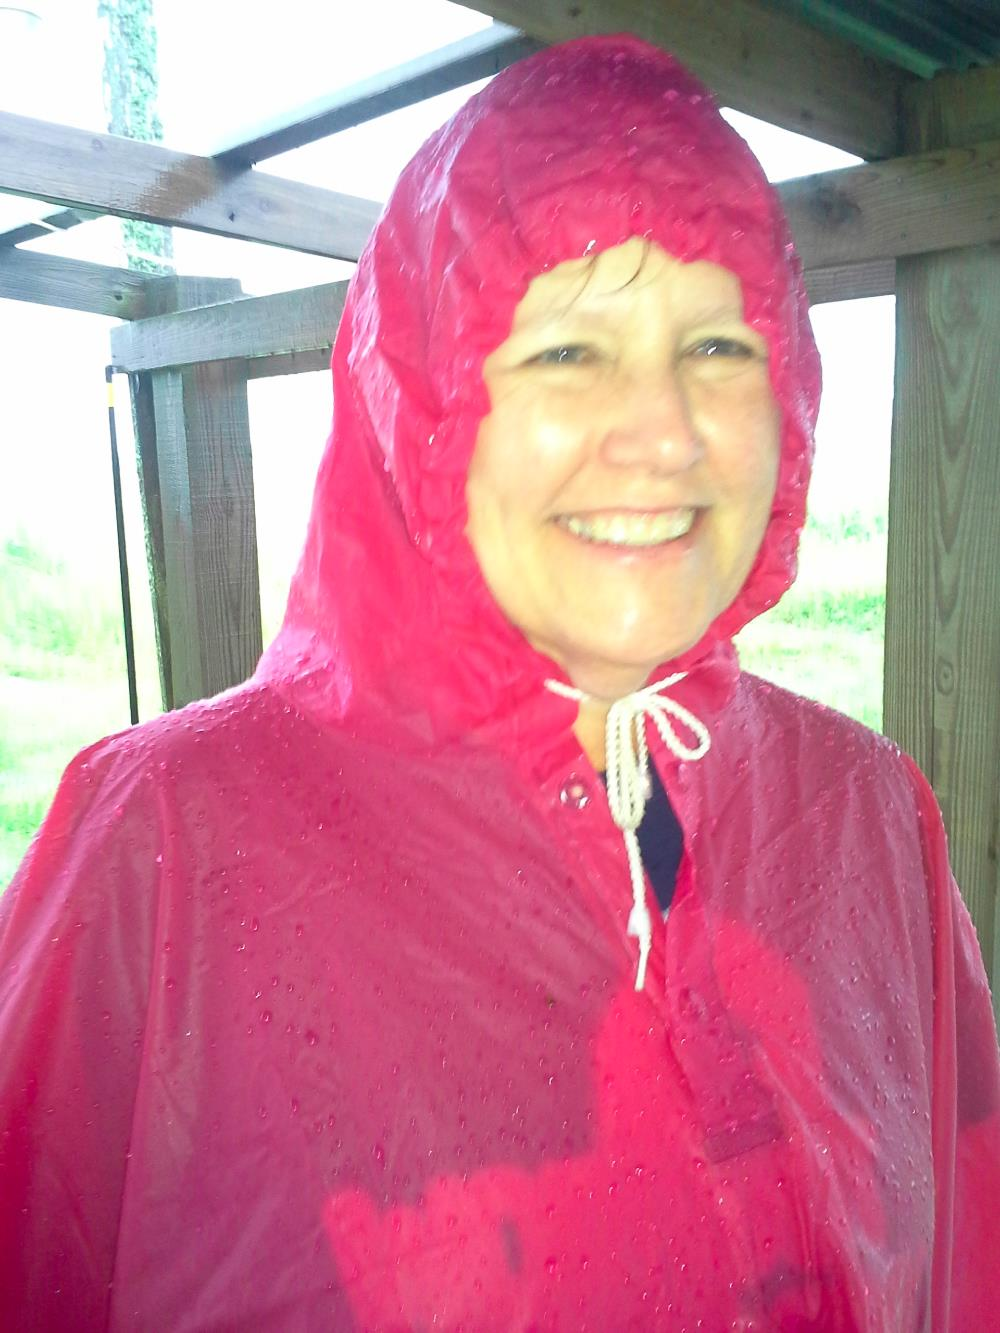 McMomma soaked but happy!